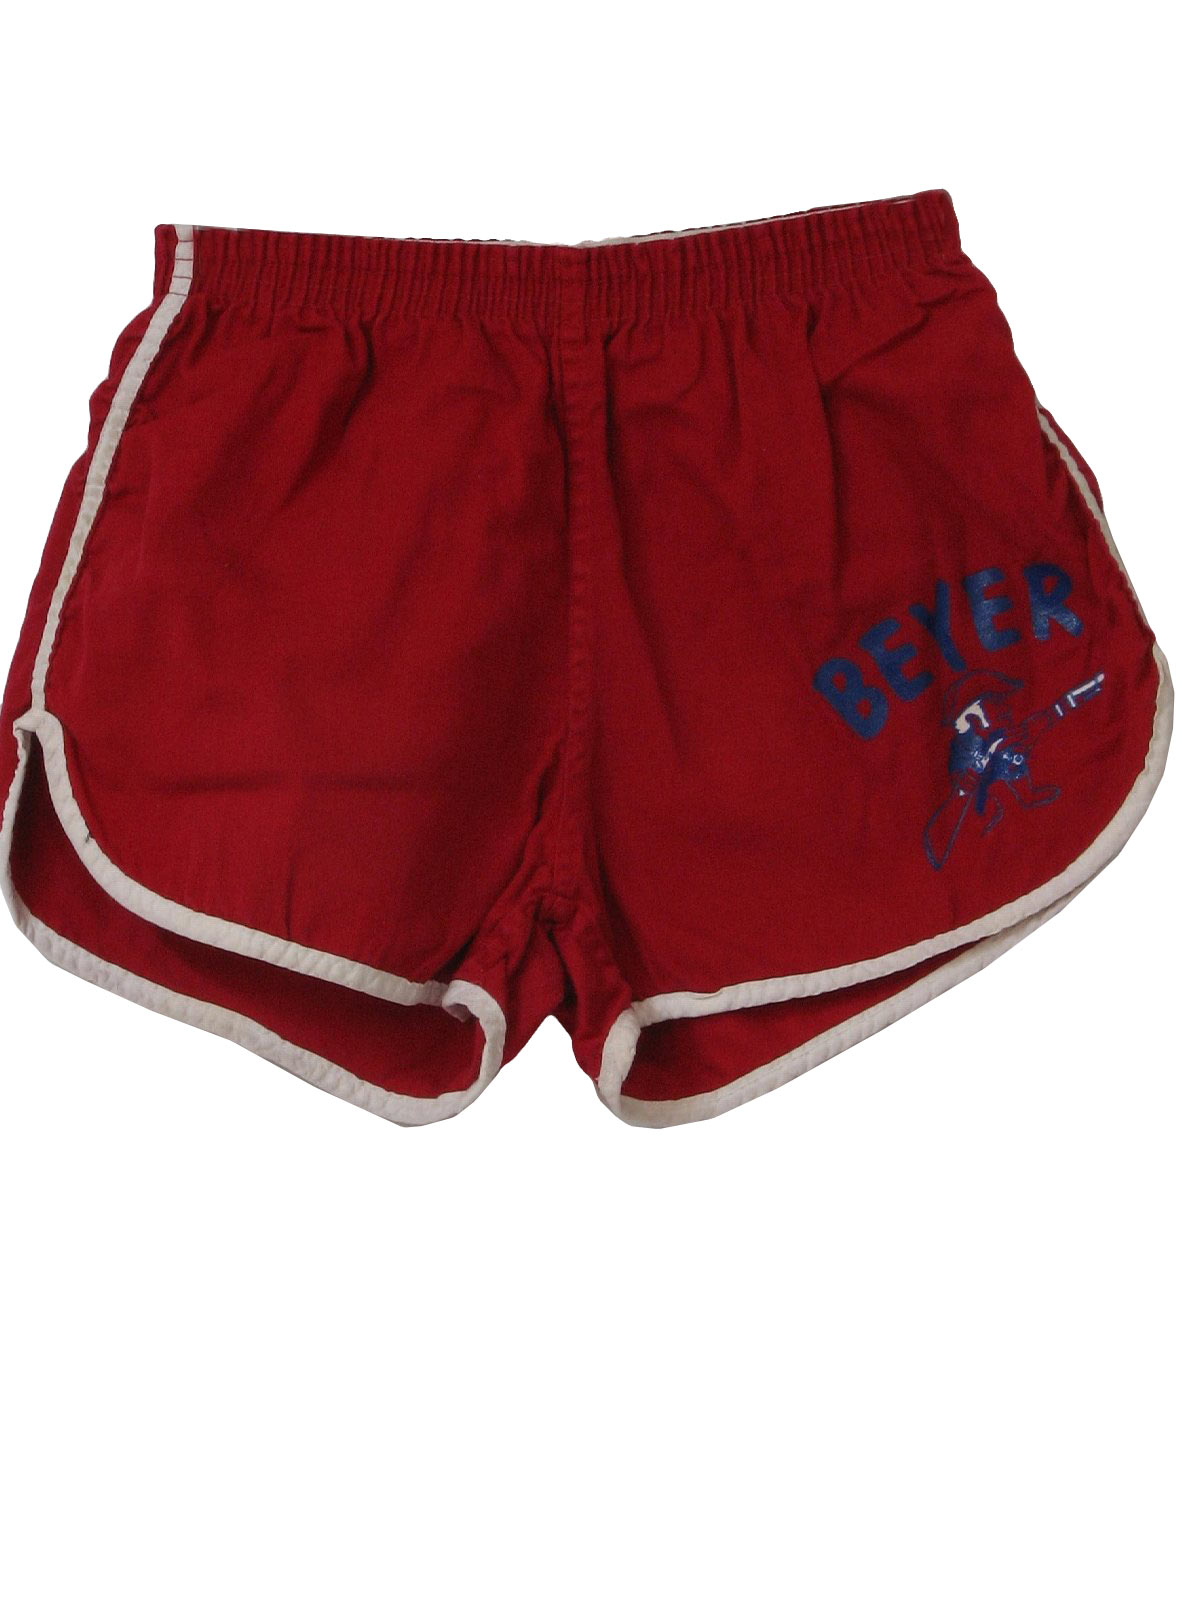 Retro 70 S Shorts 70s Champion Mens Red White And Blue